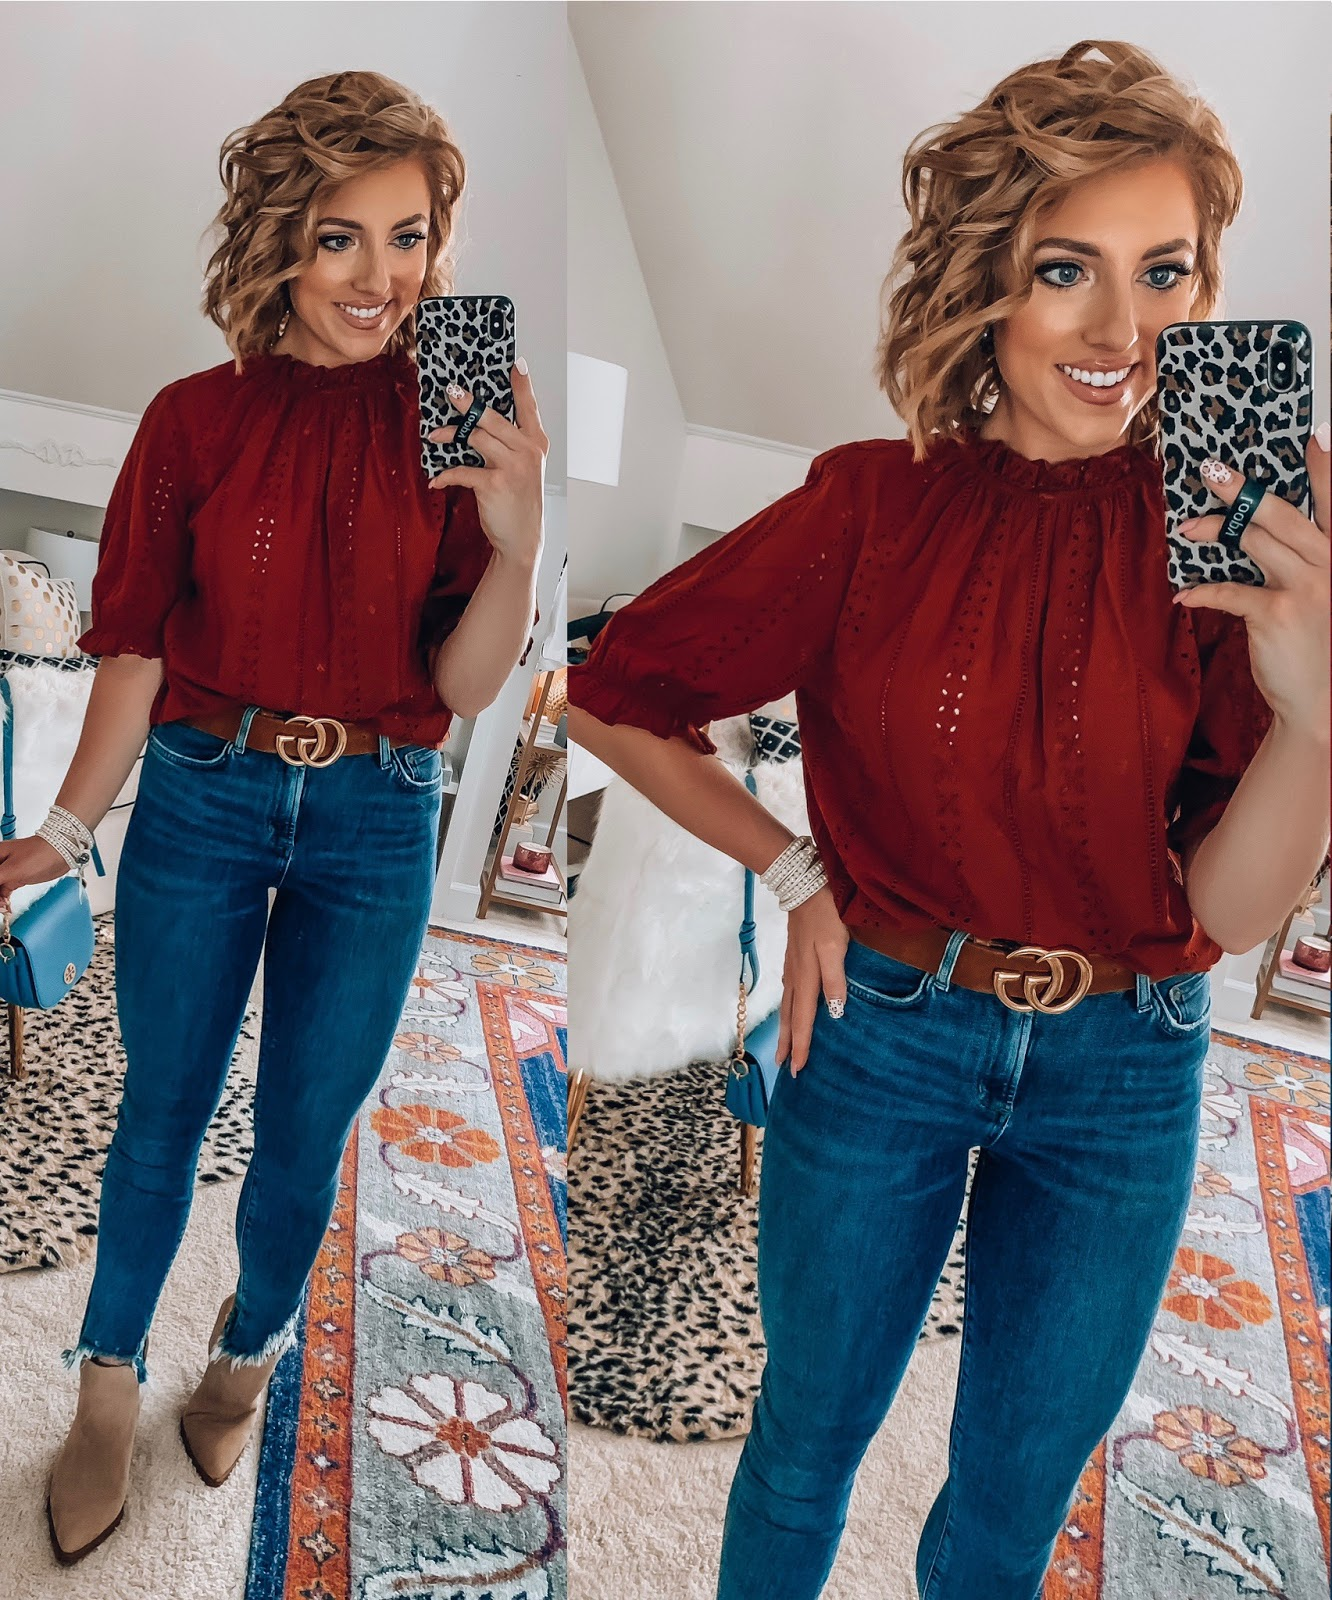 Target Fall Finds: Part One - Under $30 Eyelet Ruffle Top - Something Delightful Blog